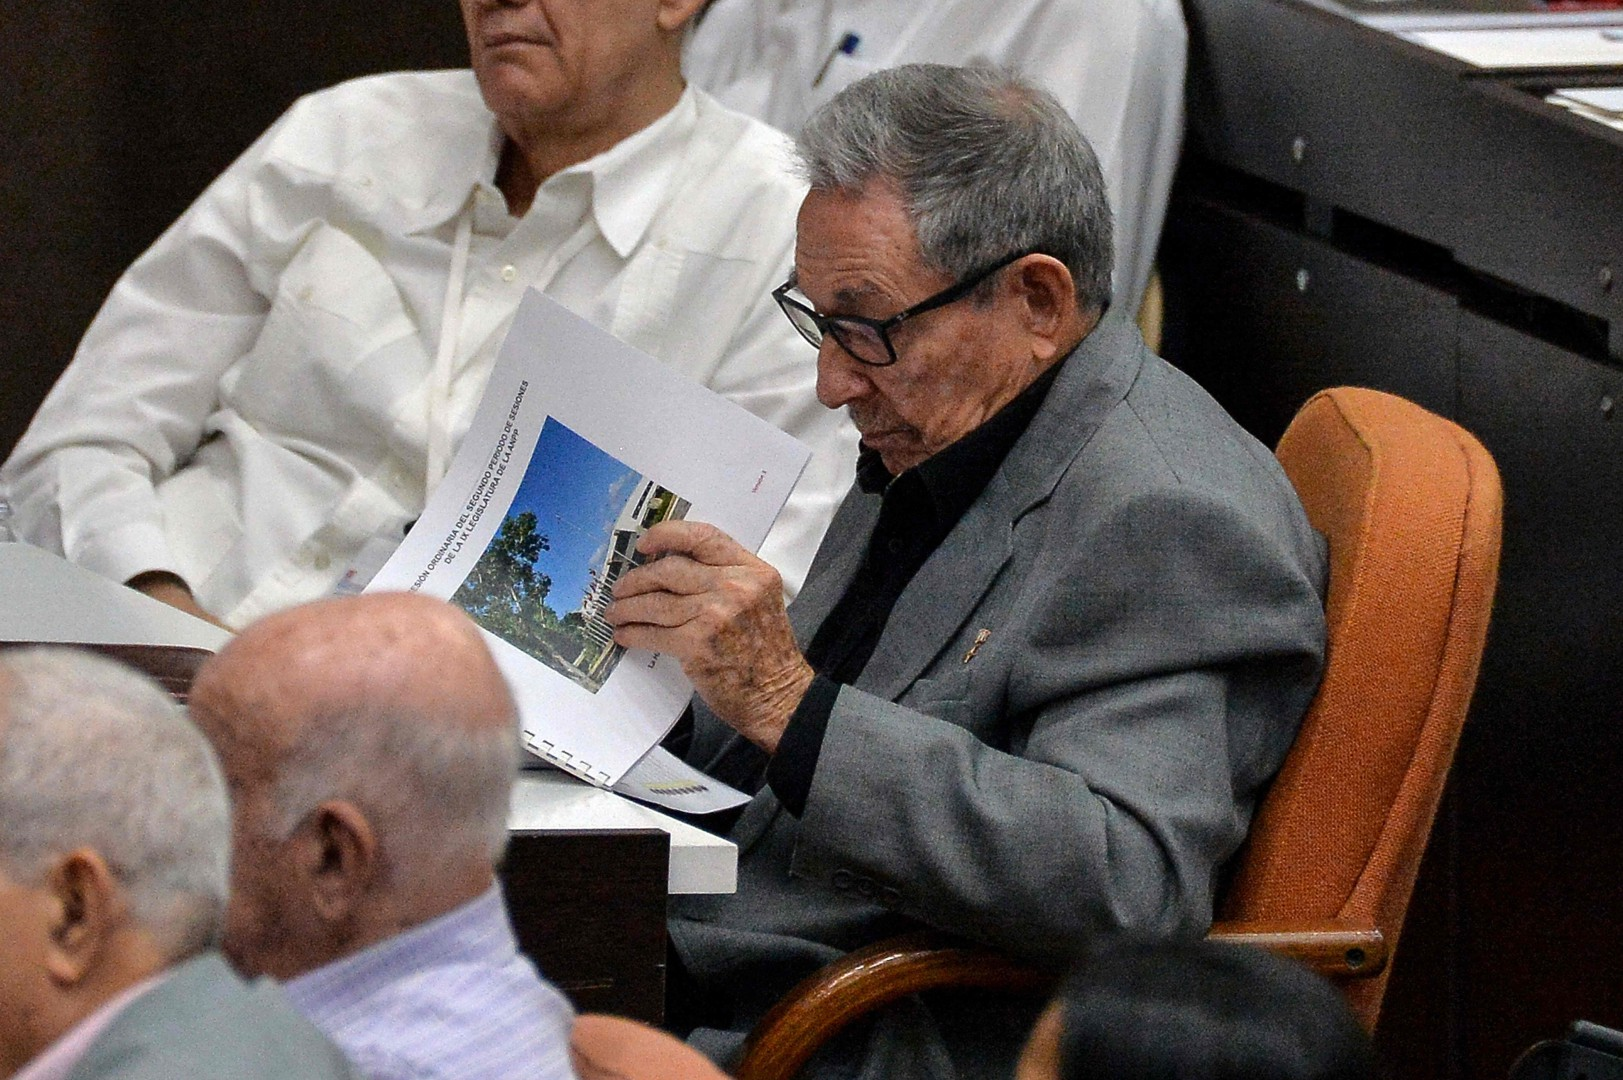 The First Secretary of the Cuban Communist Party, Cuban former President Raul Castro, attends the debate on the draft new Constitution, during the second regular session of the IX Legislature of the Cuban National Assembly of the Popular Power at the Convention Palace in Havana, on December 21, 2018. - Cuban Parliament meets on Friday to approve the draft new Constitution amended with the contributions of the population, that puts on hold homosexual marriage. The draft will be submitted to a popular referendum on February 24, 2019. (Photo by YAMIL LAGE / AFP)